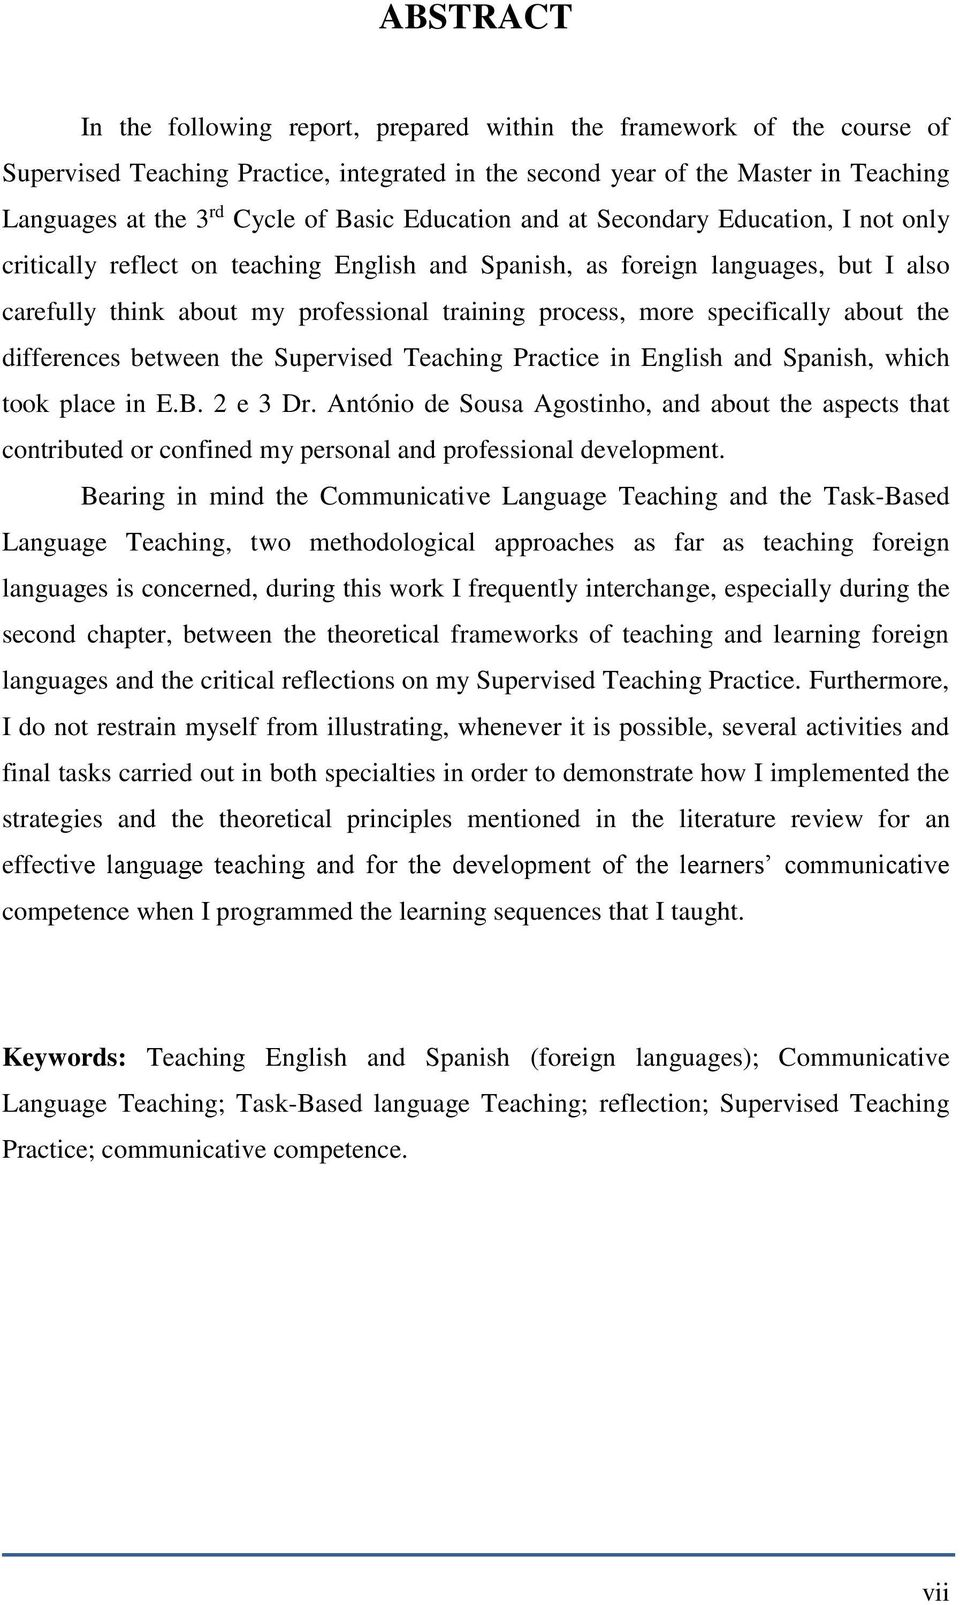 more specifically about the differences between the Supervised Teaching Practice in English and Spanish, which took place in E.B. 2 e 3 Dr.